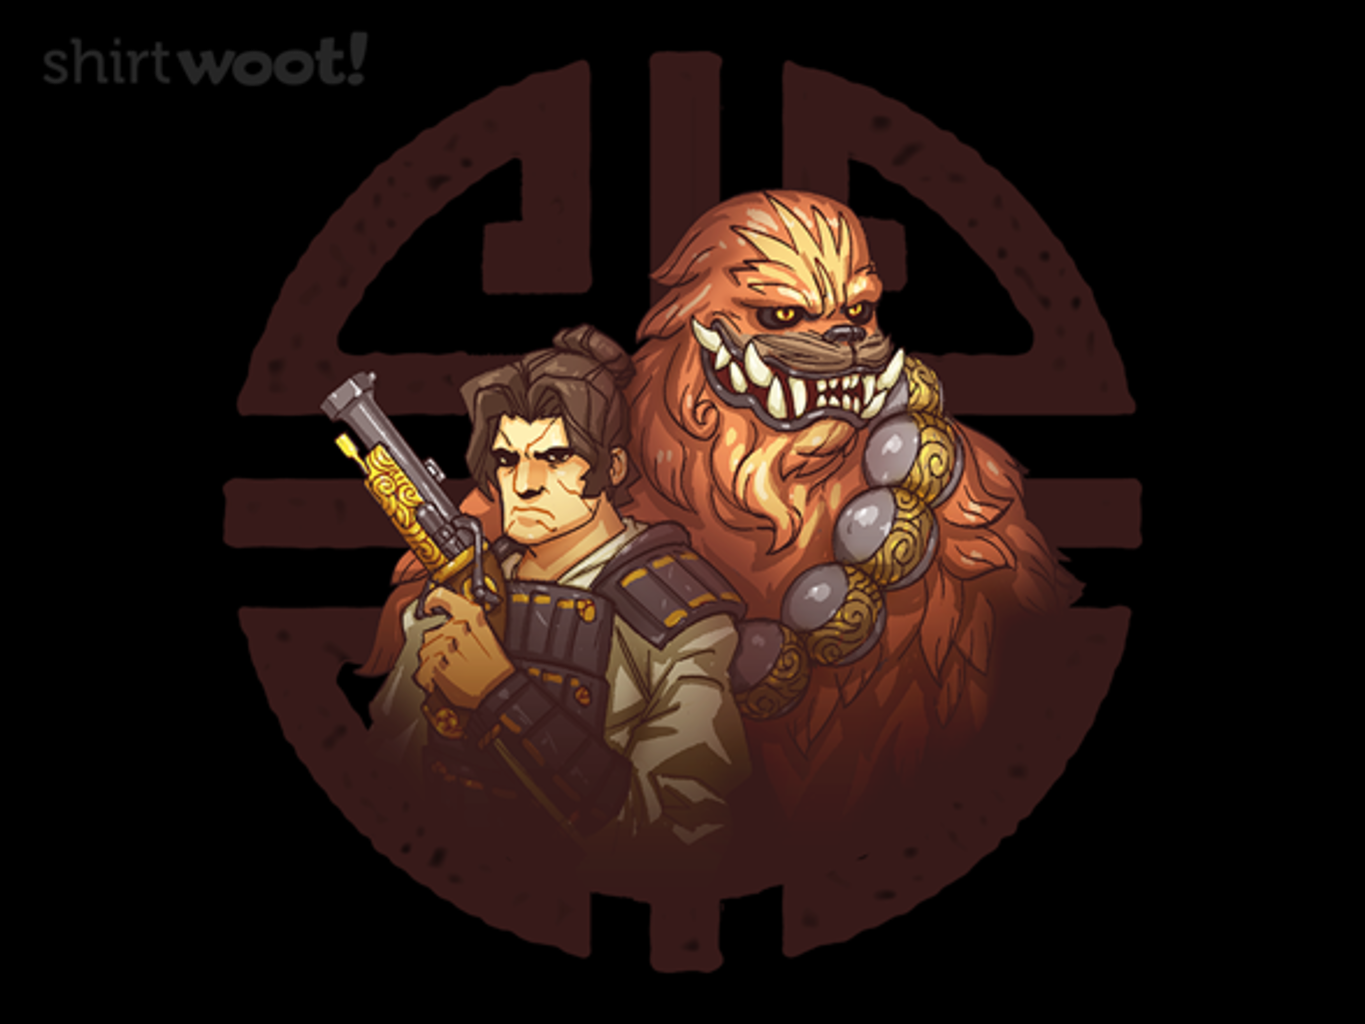 Woot!: Han-Samurai and Chew-Oni